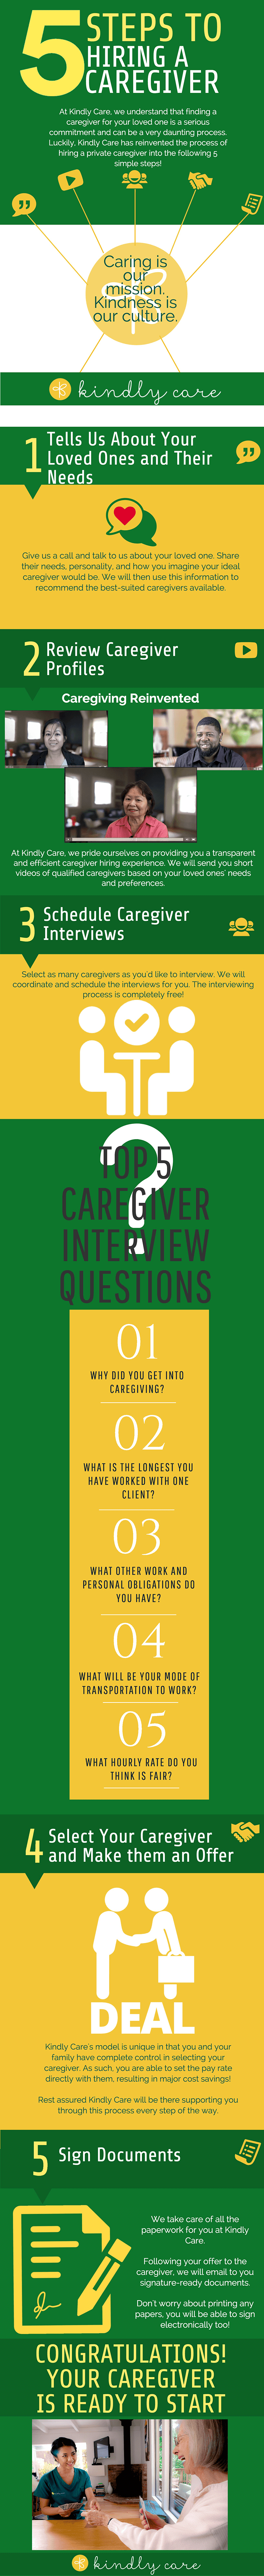 Infographic - Hiring a Caregiver with Kindly Care